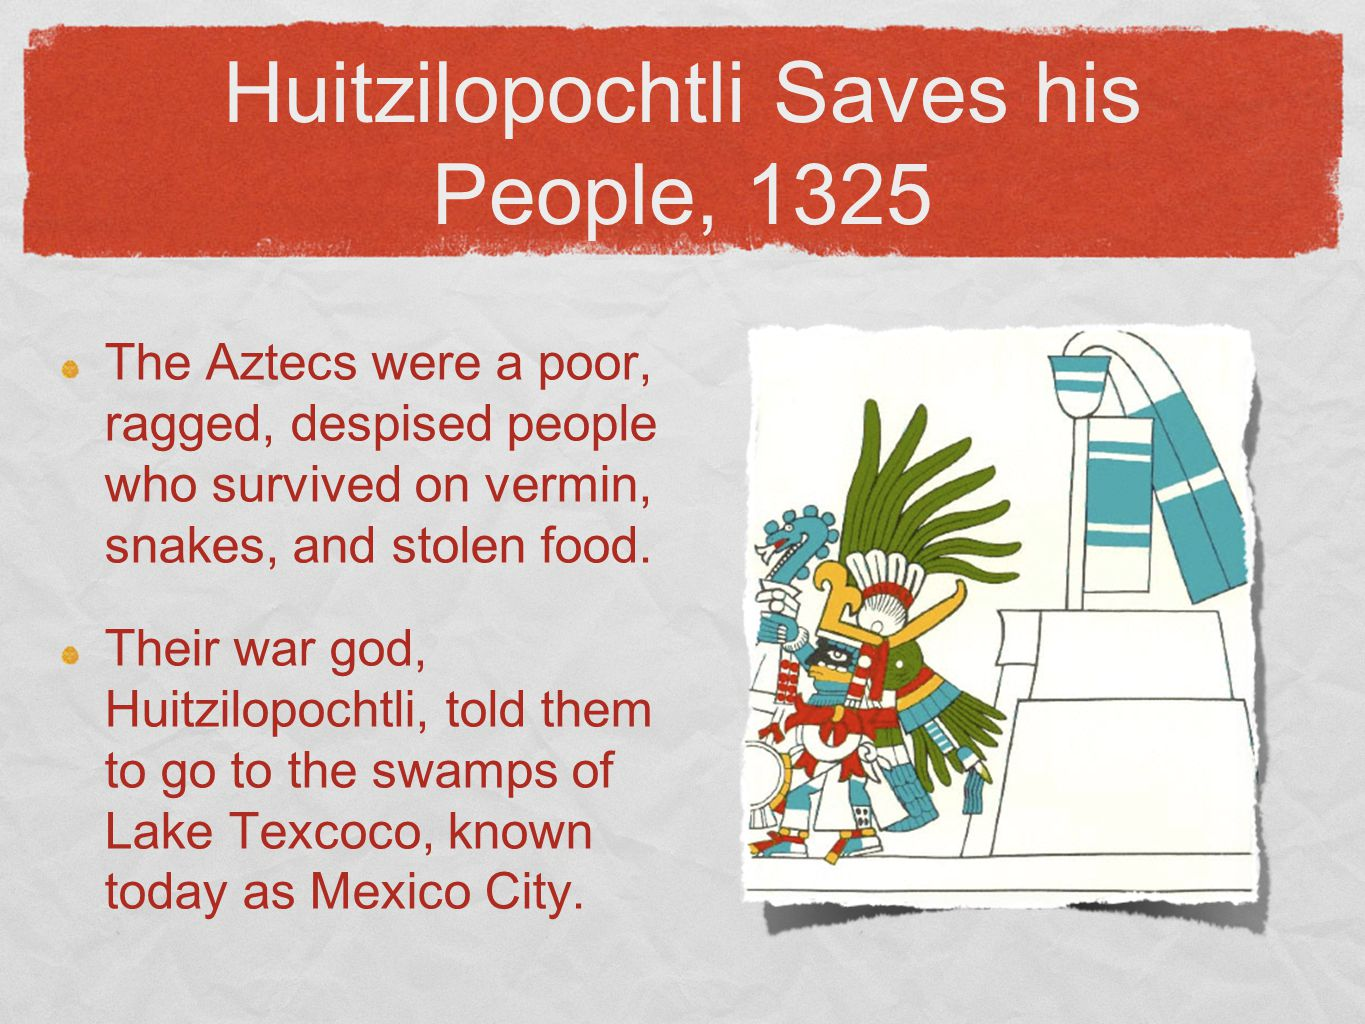 Huitzilopochtli Saves his People, 1325 The Aztecs were a poor, ragged, despised people who survived on vermin, snakes, and stolen food. Their war god,